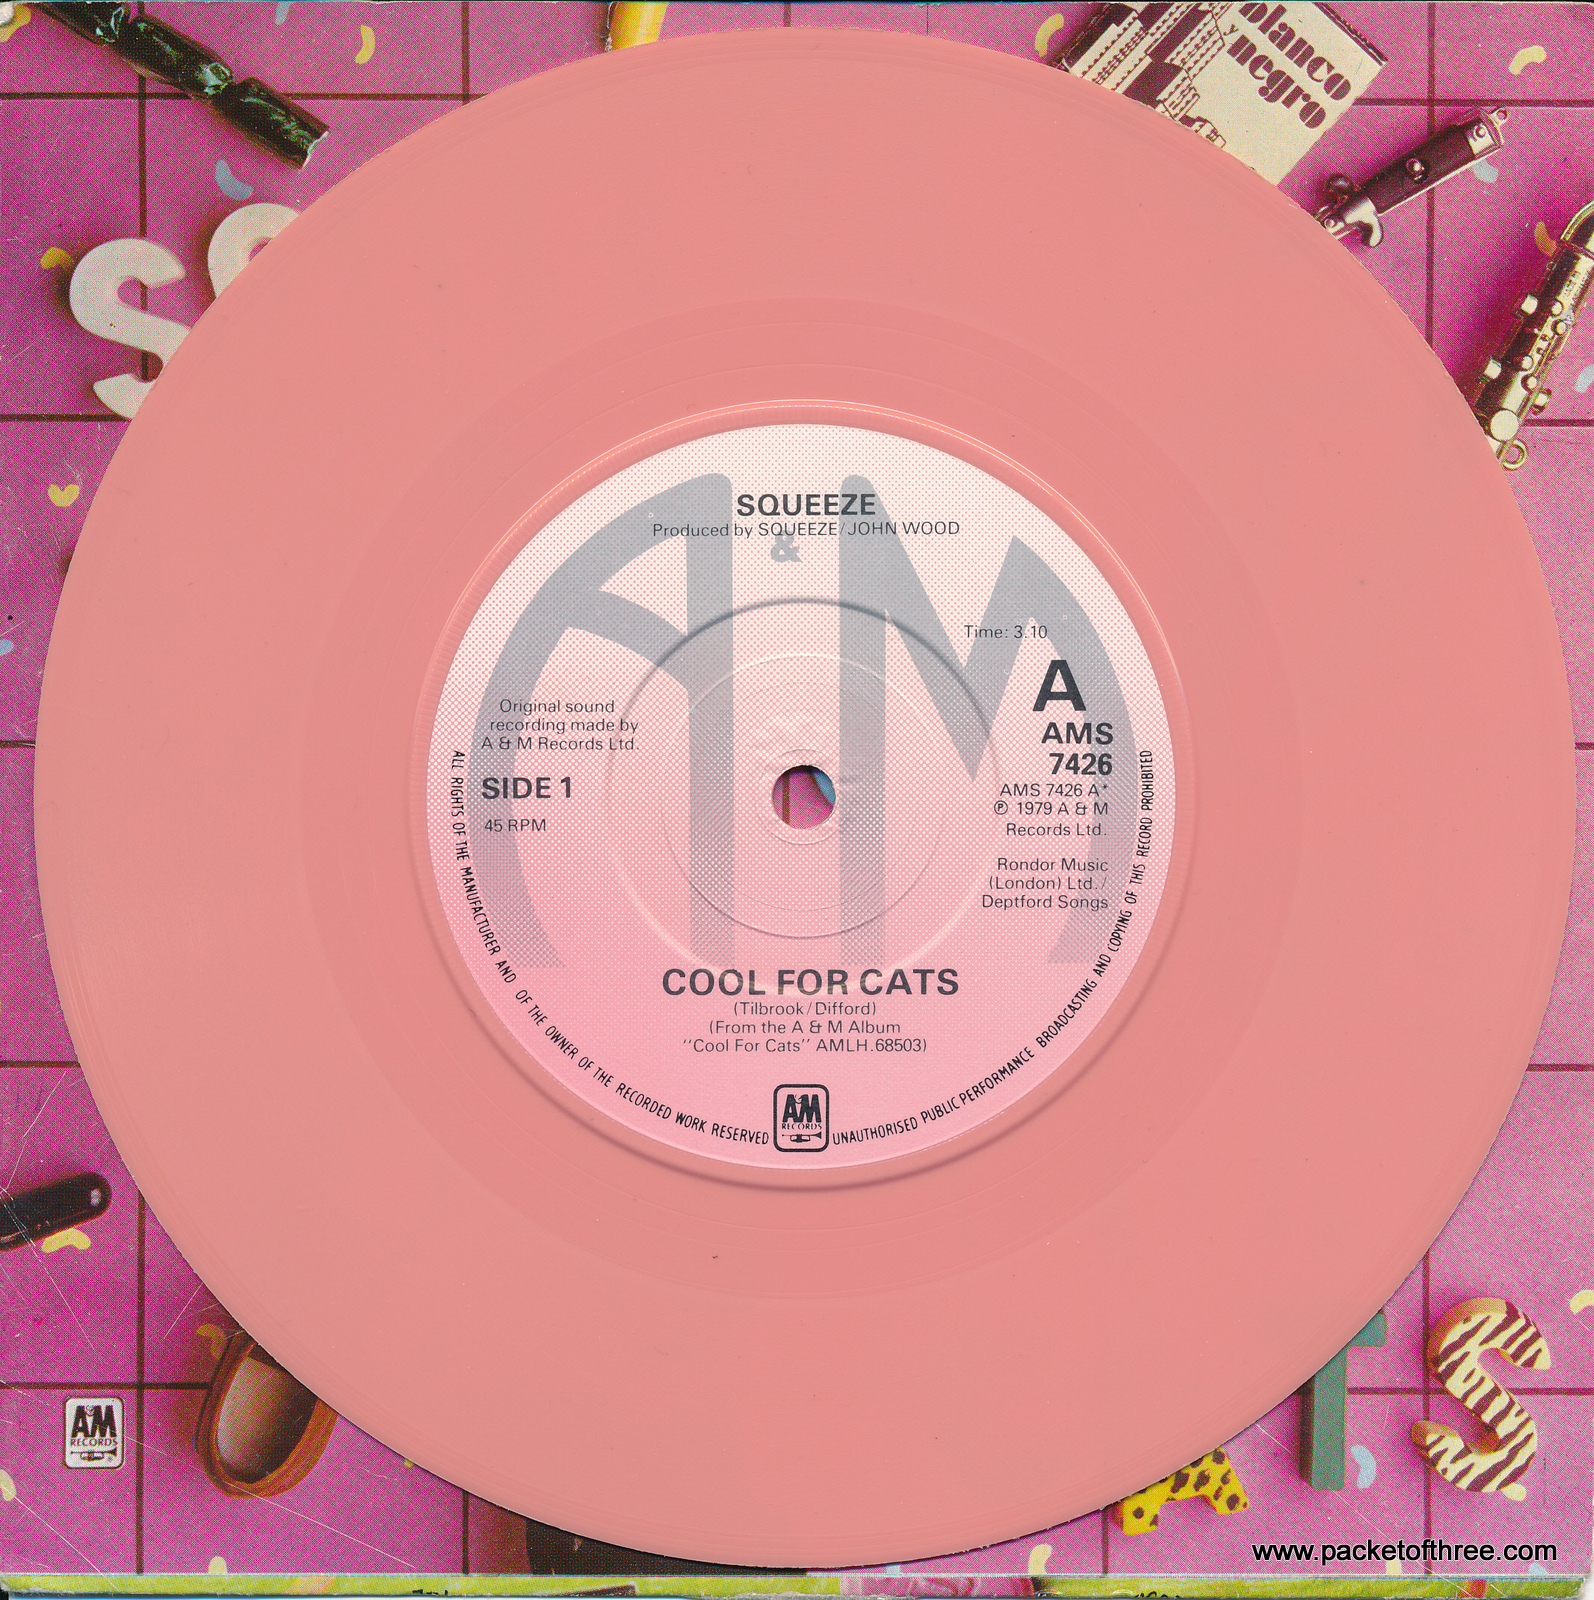 "Cool For Cats - UK - 7"" - picture sleeve - pale pink vinyl"